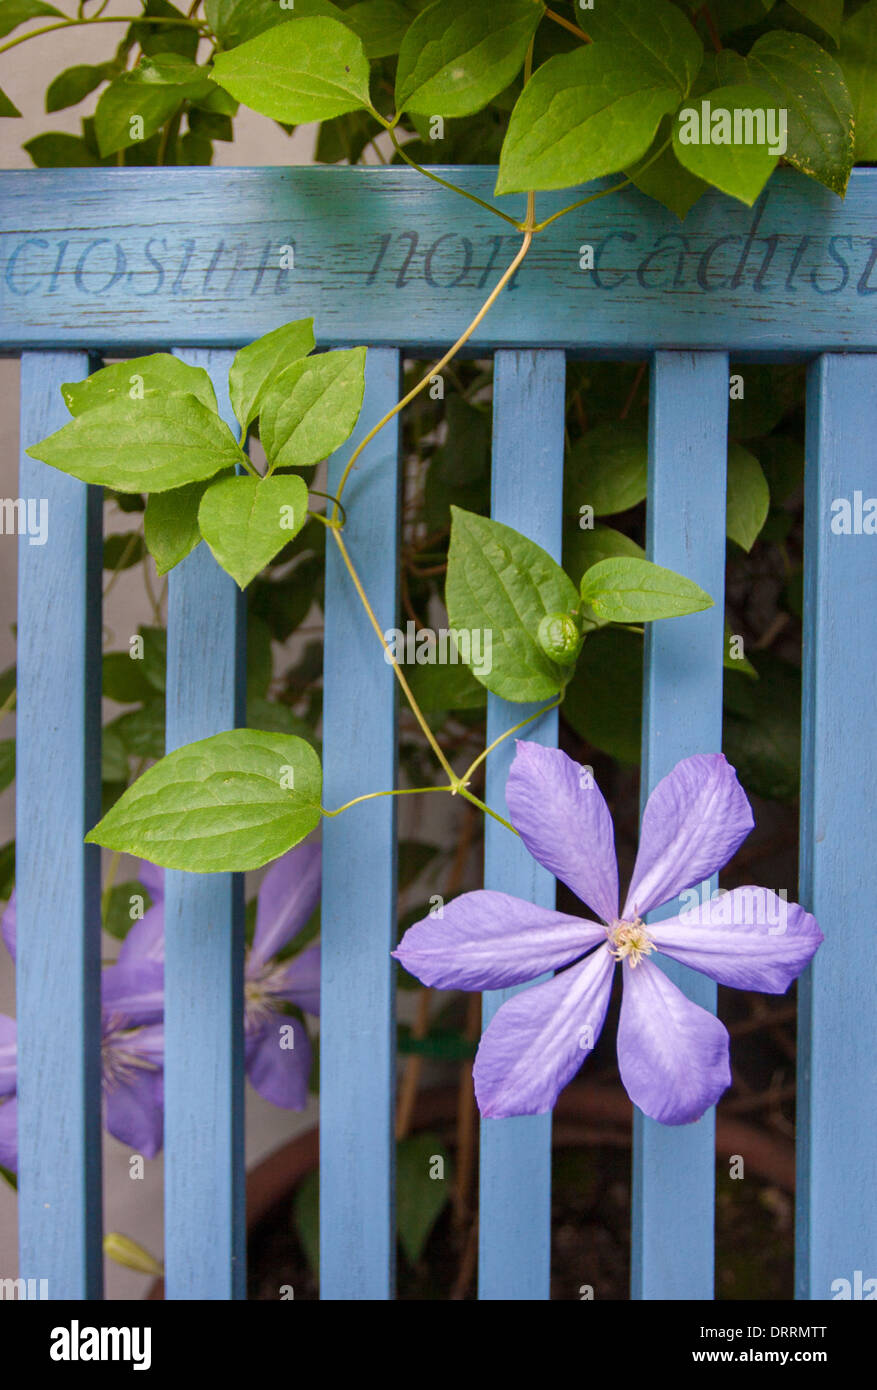 Delicate mauve Clematis flowering through a blue painted garden bench - Stock Image